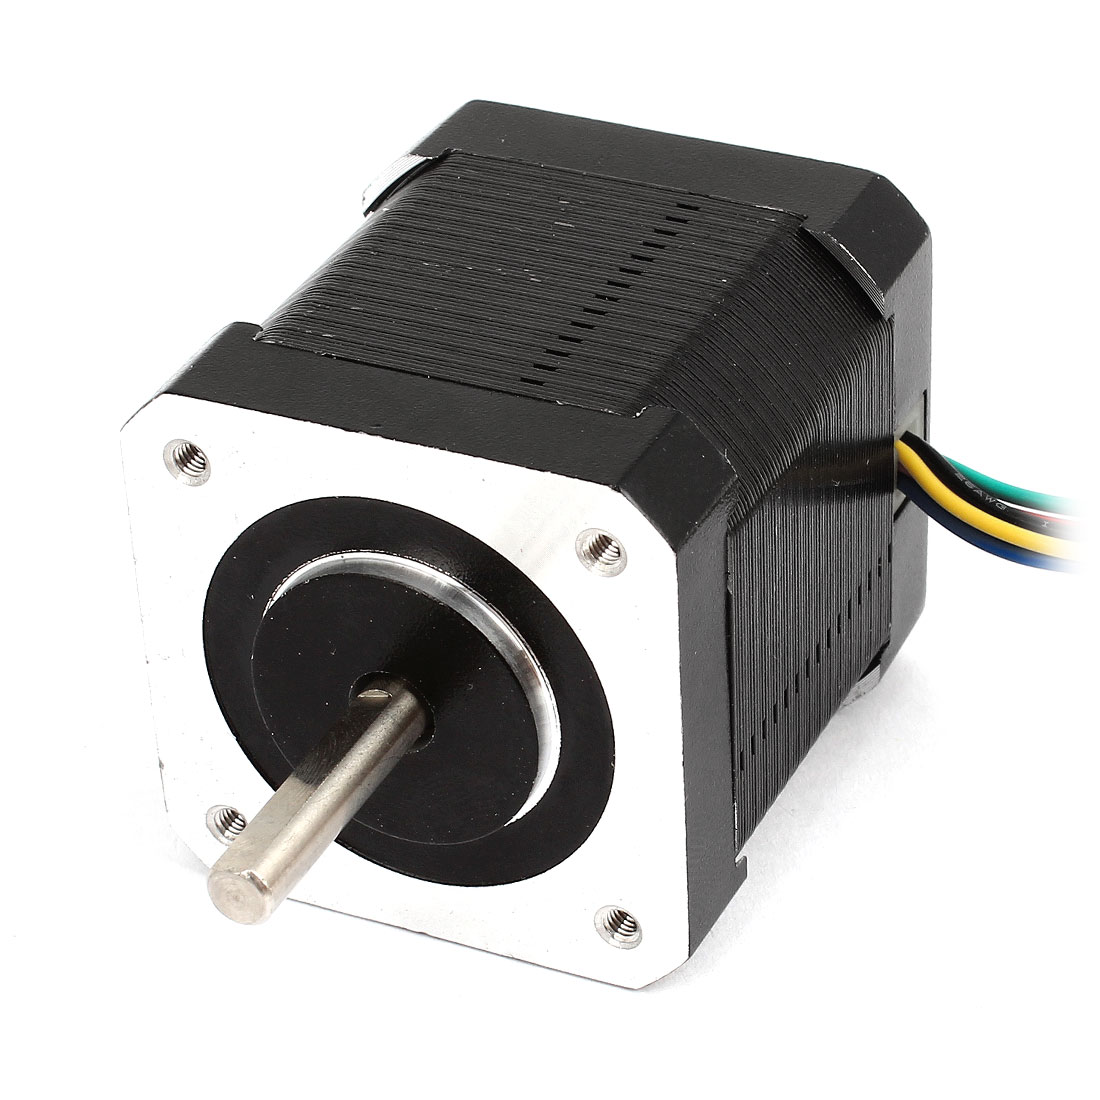 DC 12V 1.2A 42BYG47-01 1.8 Degree 3.1 Ohm 1200RPM 6 Wire Single Shaft Stepping Stepper Motor